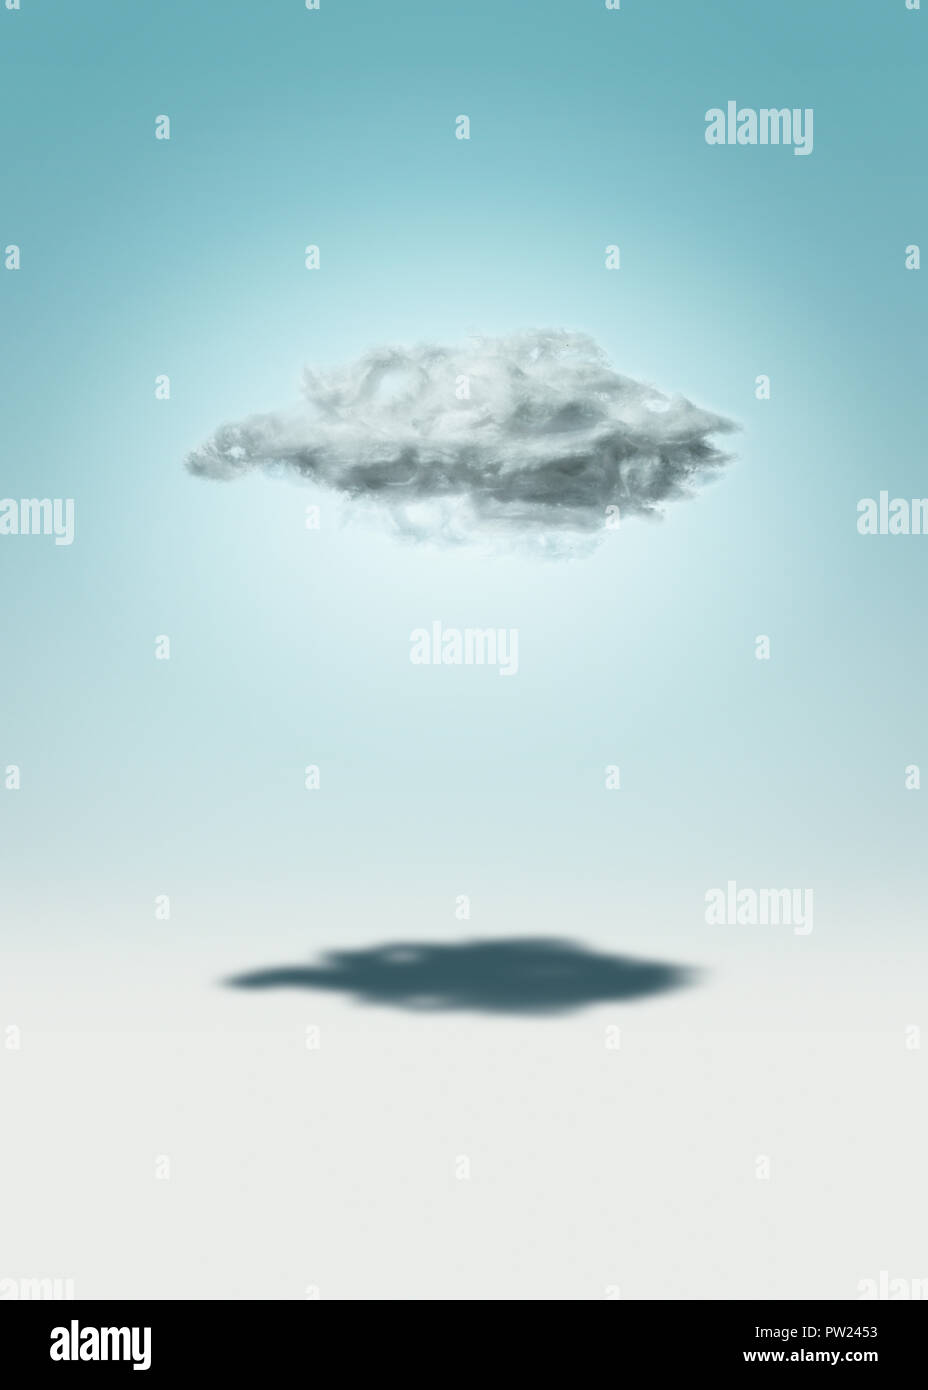 Concept A Single Cloud casting a Shadow, Loneliness, Single, Alone - Stock Image